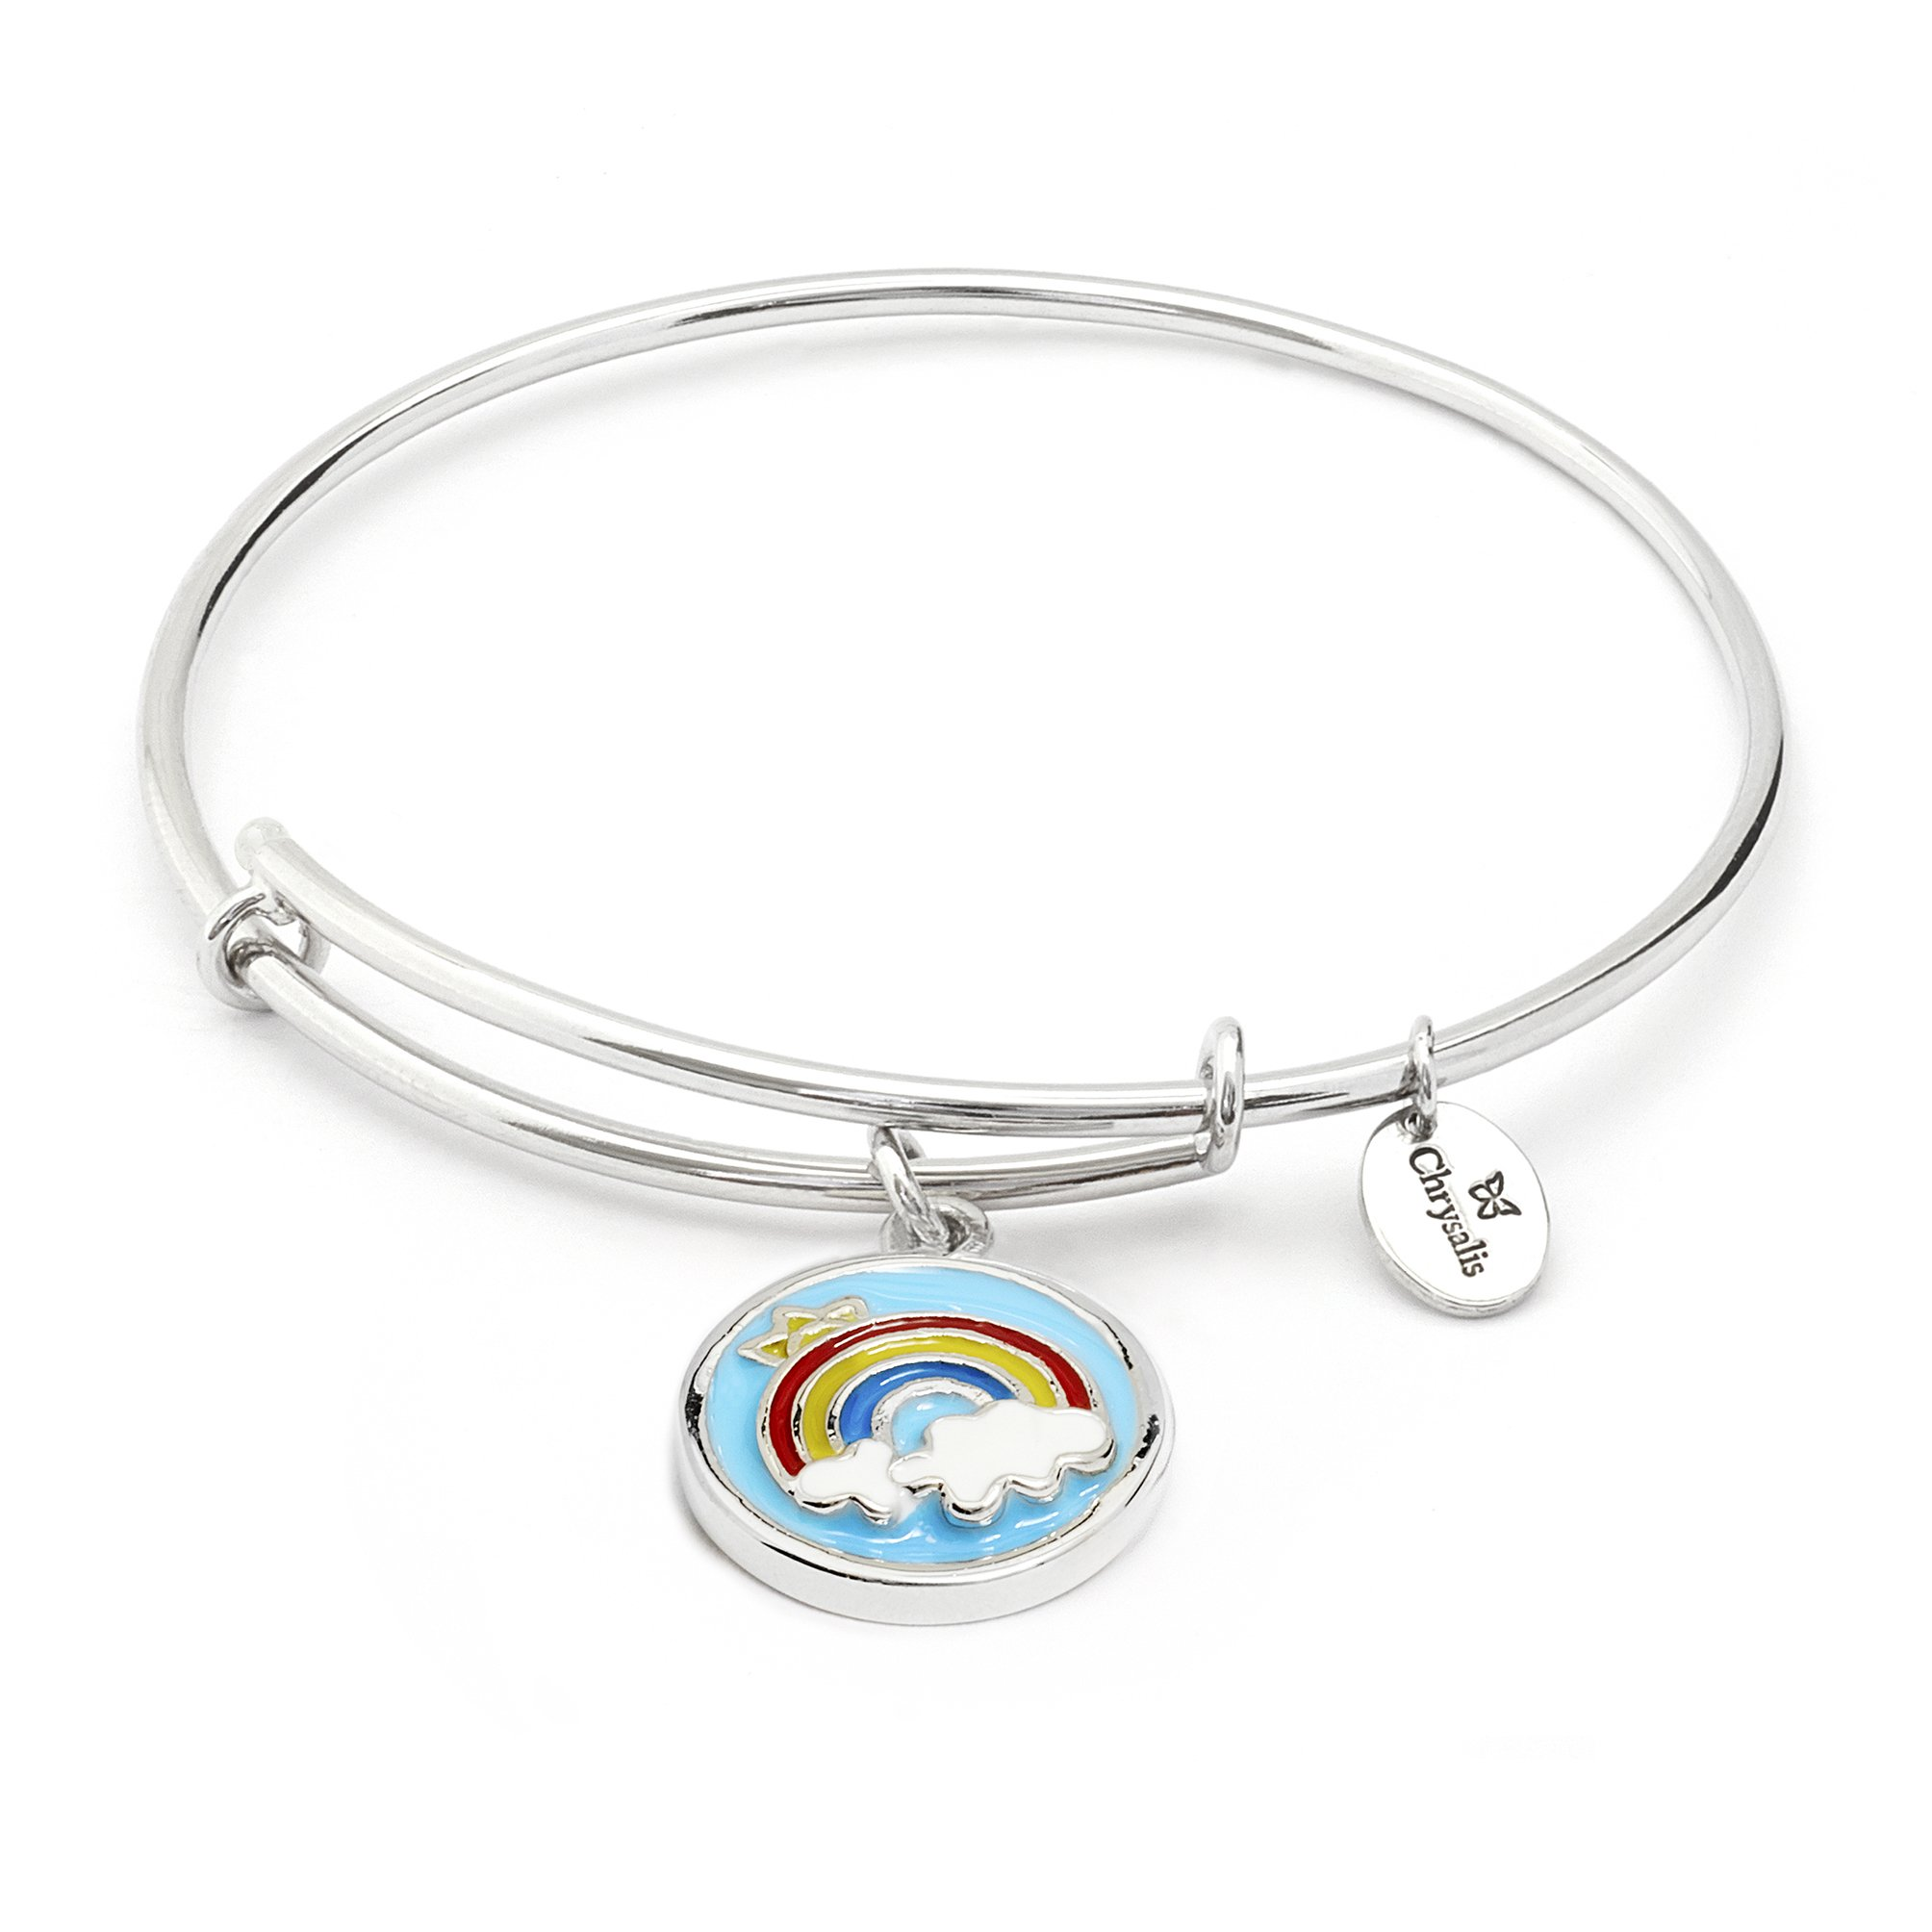 Cute Summer Nature Rainbow Charm Stackable Expandable Bangle Bracelet for Girls, Silver Colorful